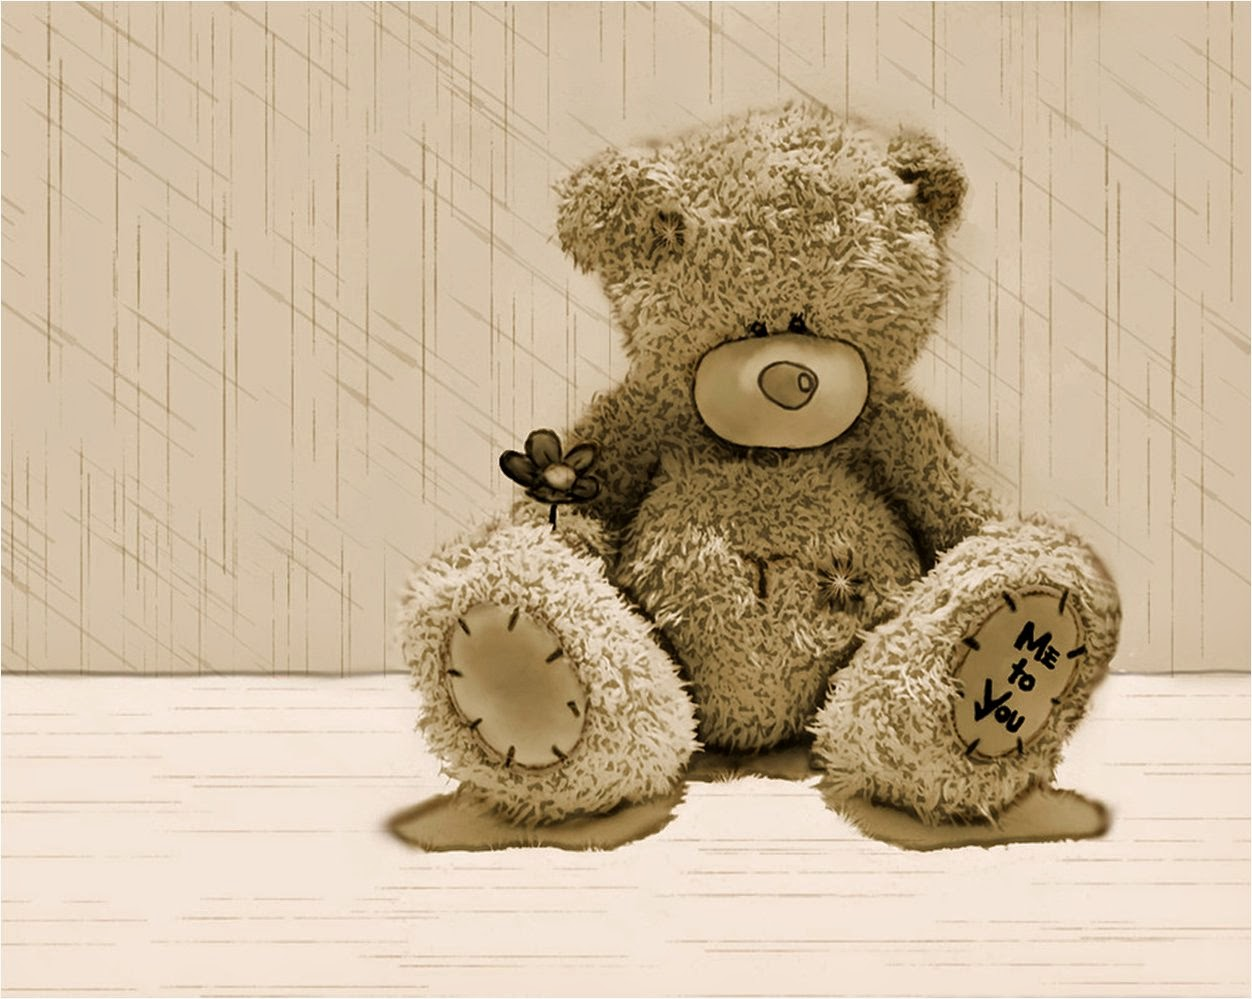 sad-Teddy-bear-cartoon-love-failure-image-1252x999.jpg